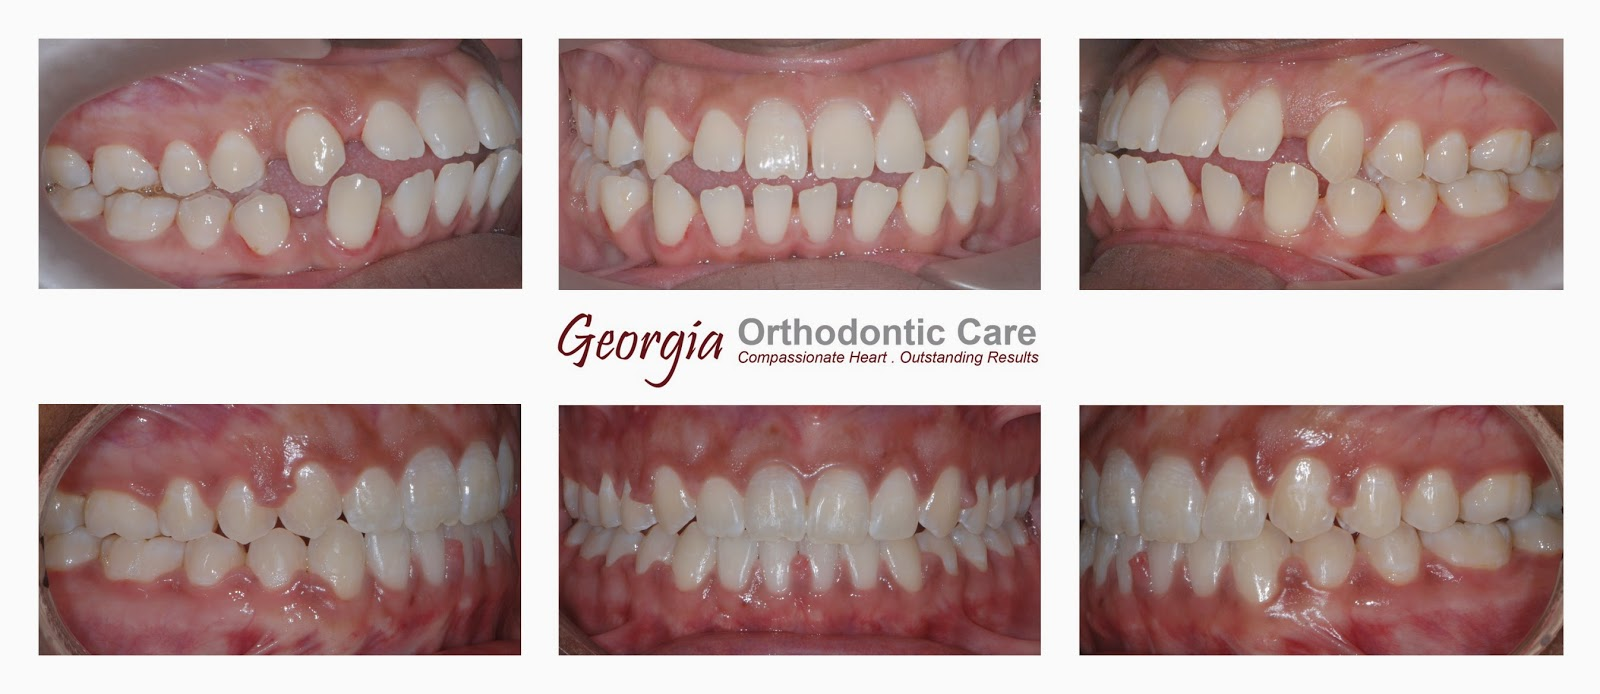 Teeth spaces, spaced-teeth, space consolidation, under bite treatment, class III treatment, Lawrenceville orthodontist, Norcross orthodontist, Gwinnett orthodontist, orthodontists, orthodontics, under bite, over bite, Georgia Orthodontic Care, Dr Nguyen, Cosmetic, Implant, Children, Family, Dentists, Clear, Braces, Invisible, Adults, Teens, Children, Clear Braces, Invisible Braces, Invisalign, Straighten, Teeth, Lawrenceville, Norcross, Buford, Hamilton Mill, Dacula, Auburn, Sugar Hill, Sugar Loaf, Doraville, Chamblee, Stone Mountain, Decatur, Collins Hill, Snellville, Suwanee, Grayson, Lilburn, Duluth, Cumming, Alpharetta, Marietta, Dekalb County, Gwinnett County, Atlanta, North Georgia, GA, Georgia, 30043, 30093